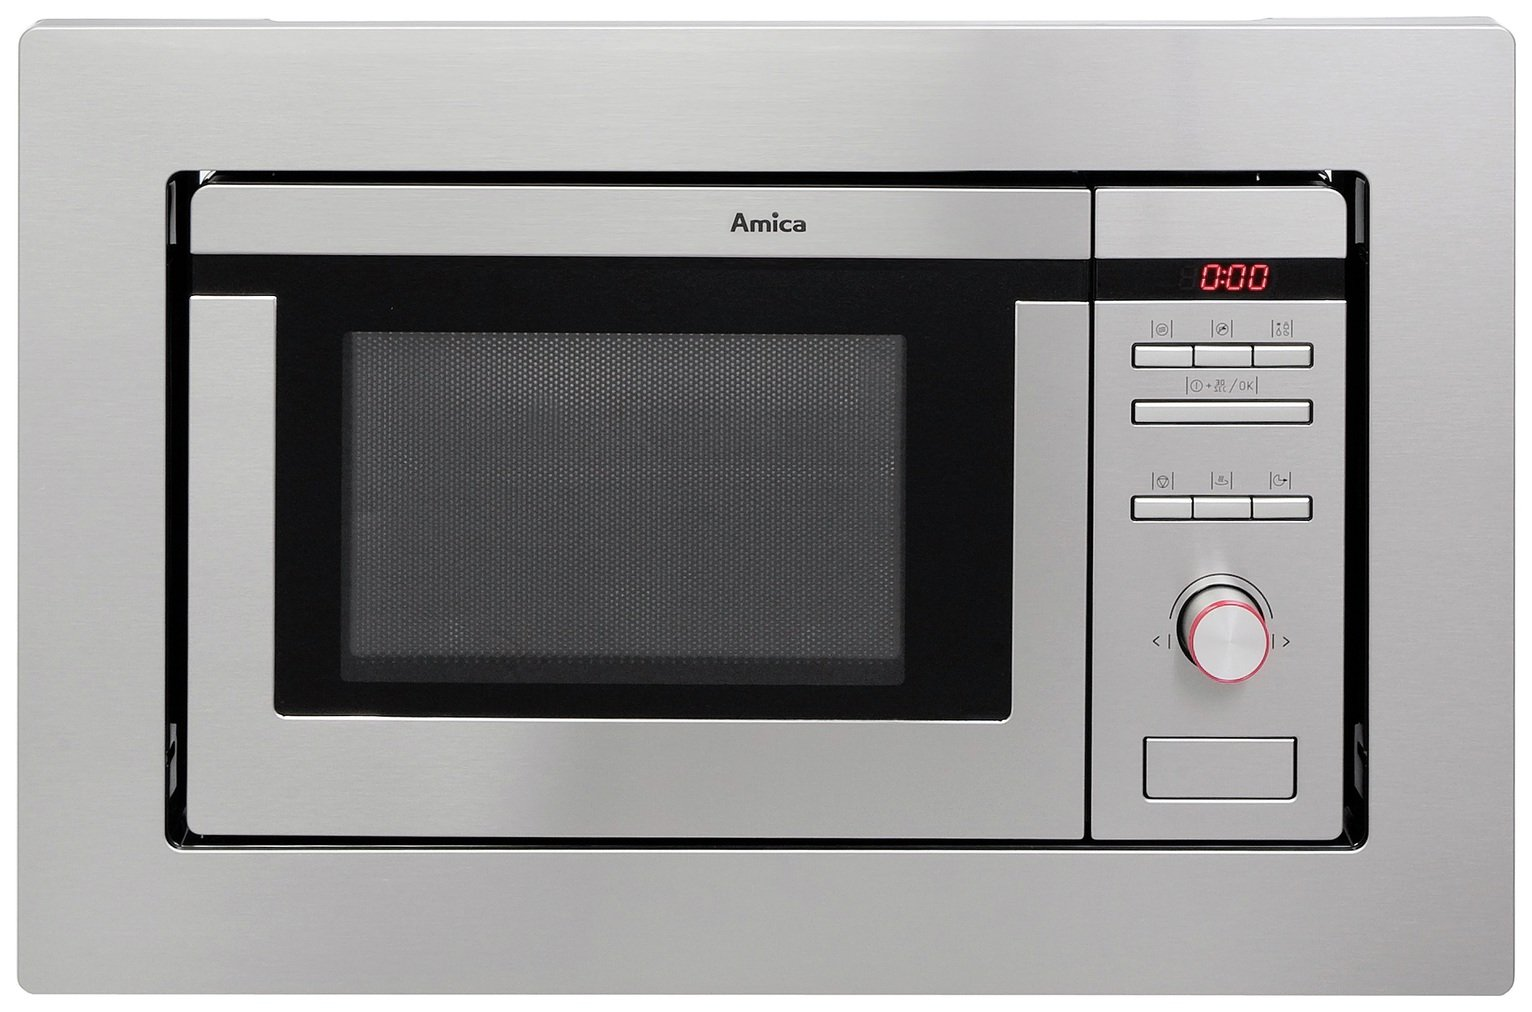 Amica AMM20G1BI 800W Built In Microwave - Stainless Steel